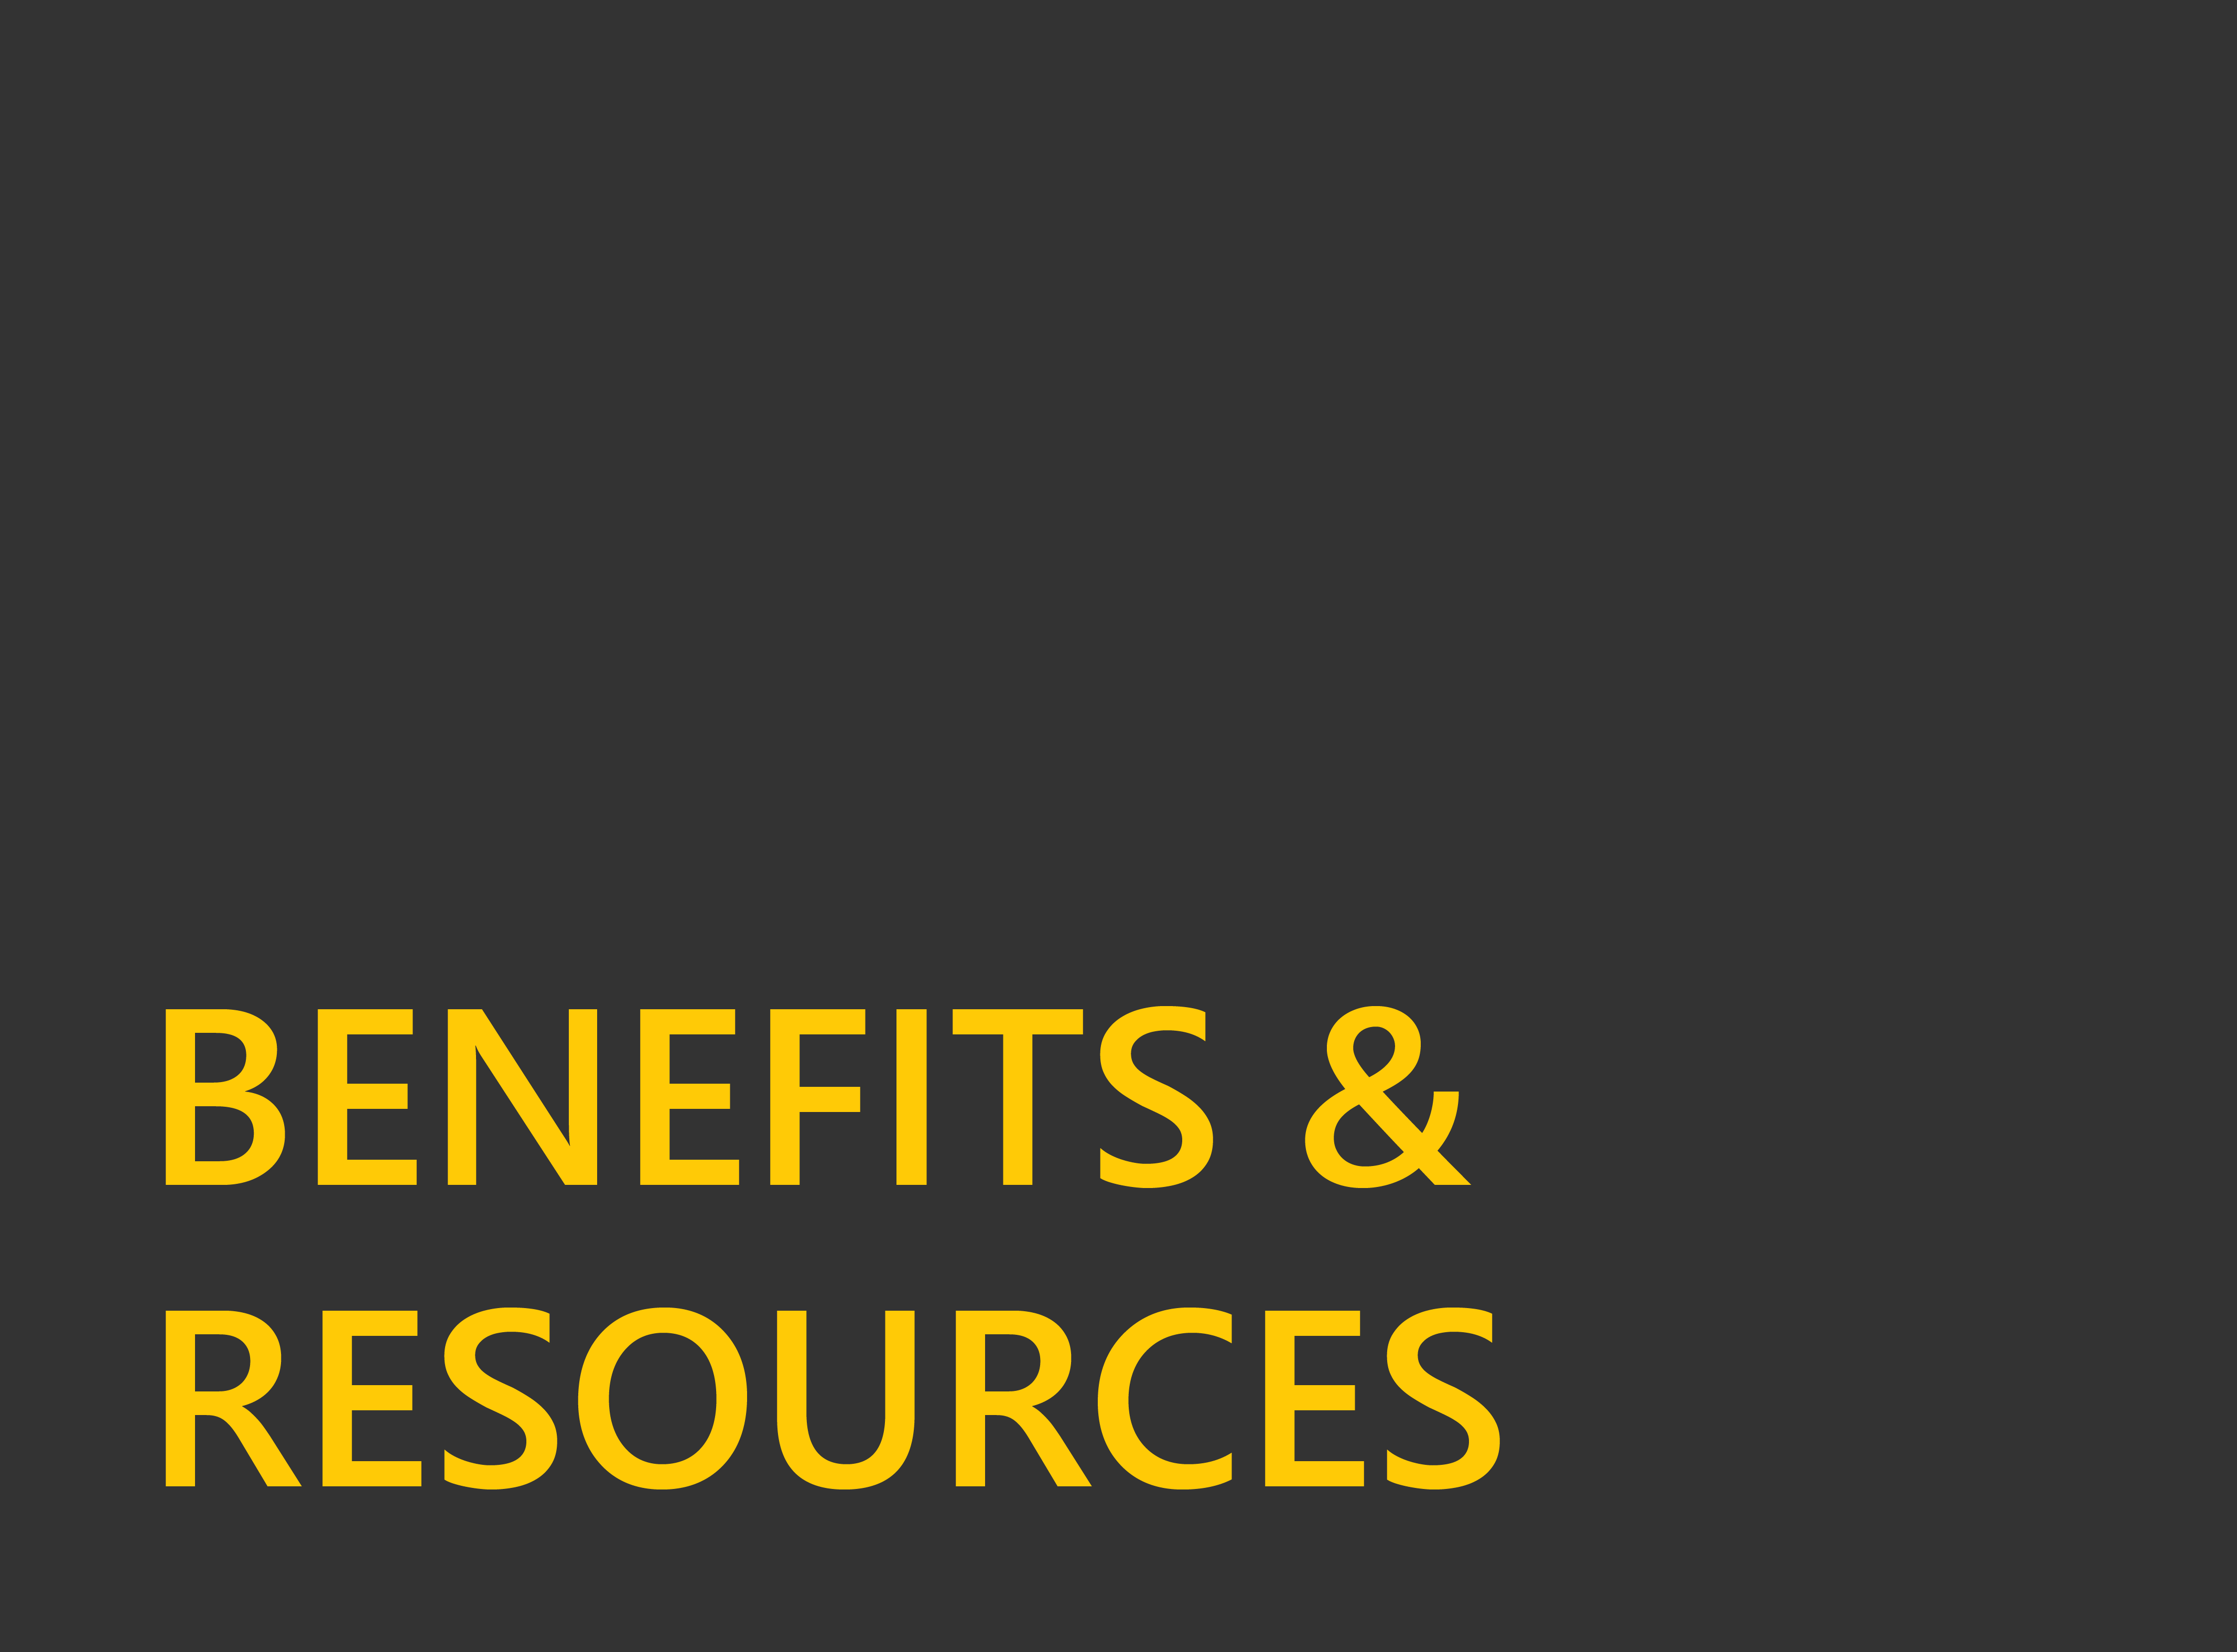 Benefits & Resources